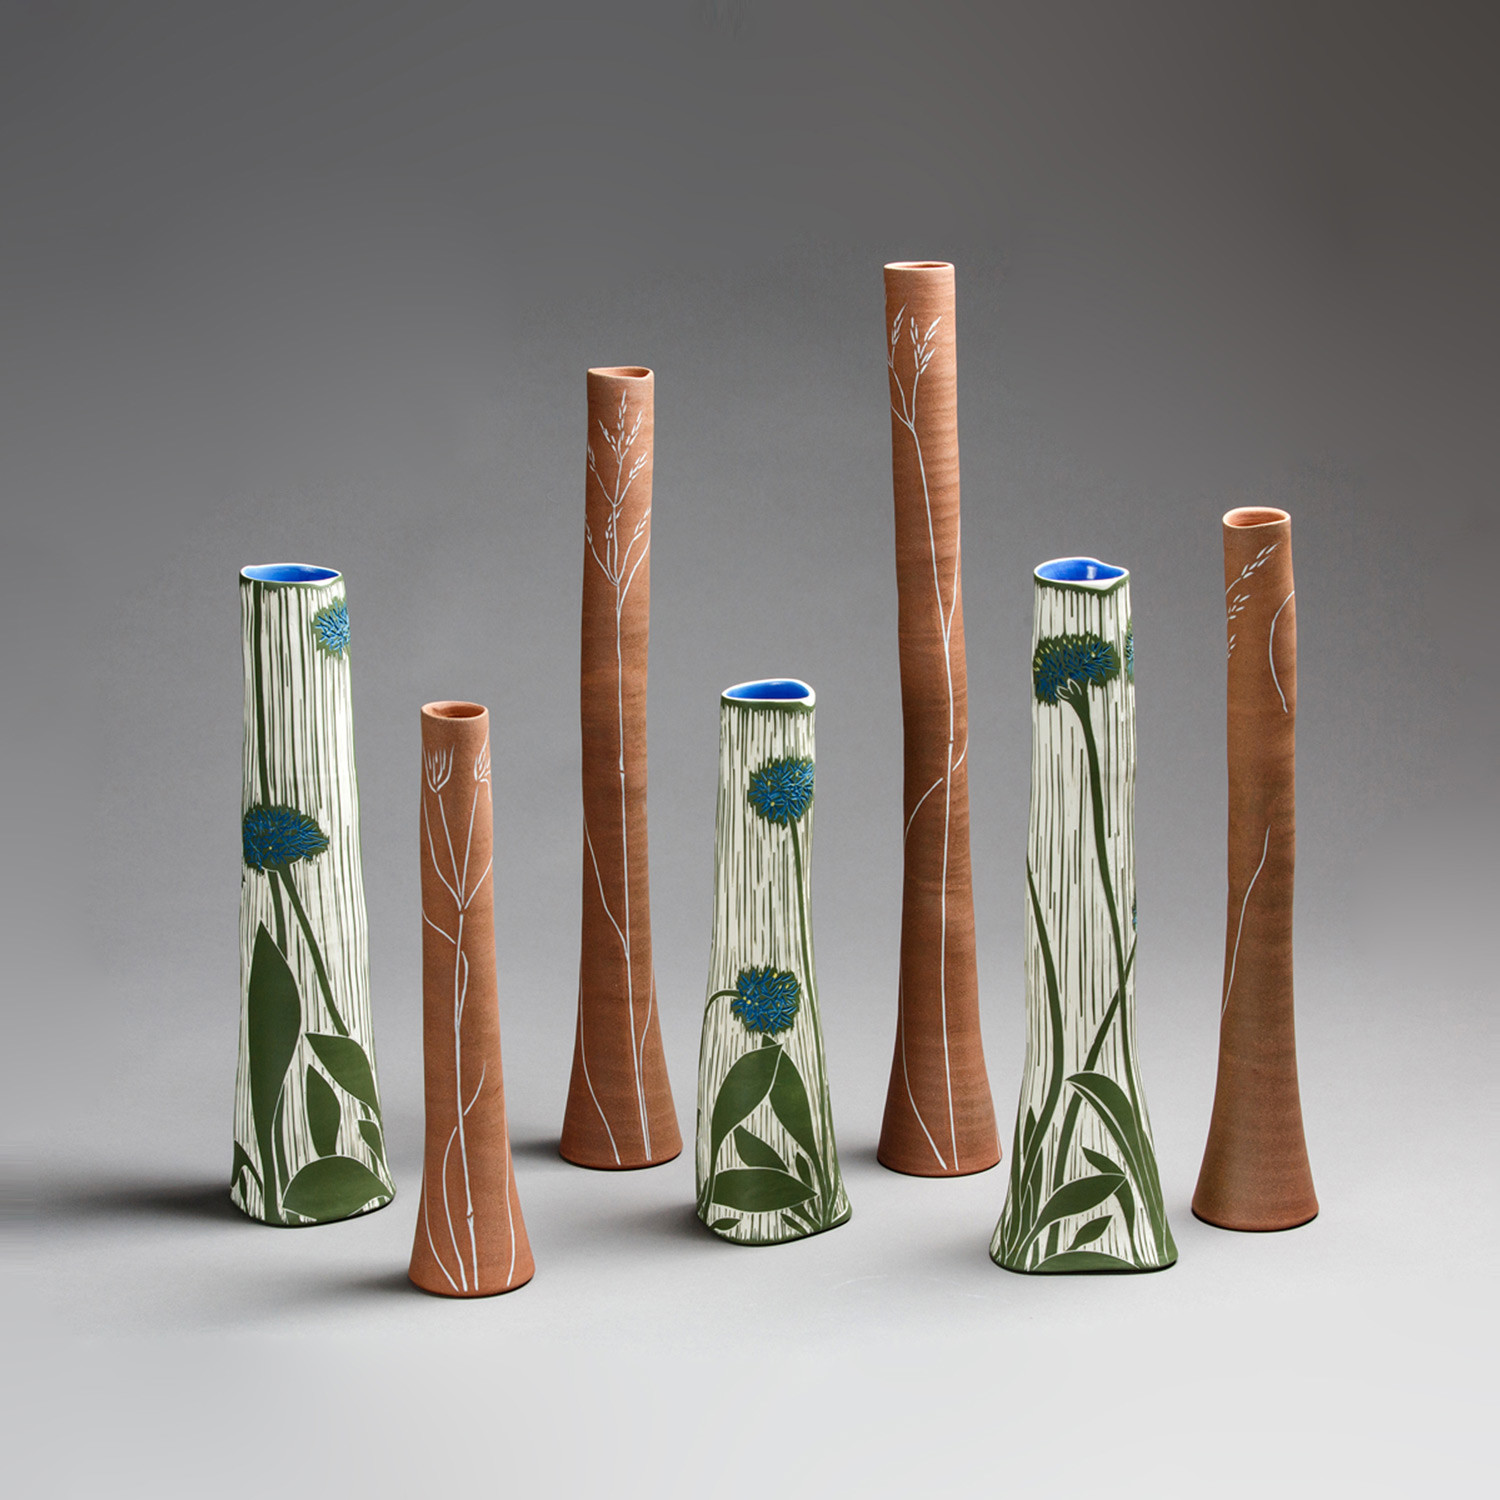 Ceramic Vase Set Of 3 Of something Blue Ceramic Masters Sabbia Gallery with Fra2 025 sold Grassland Blue